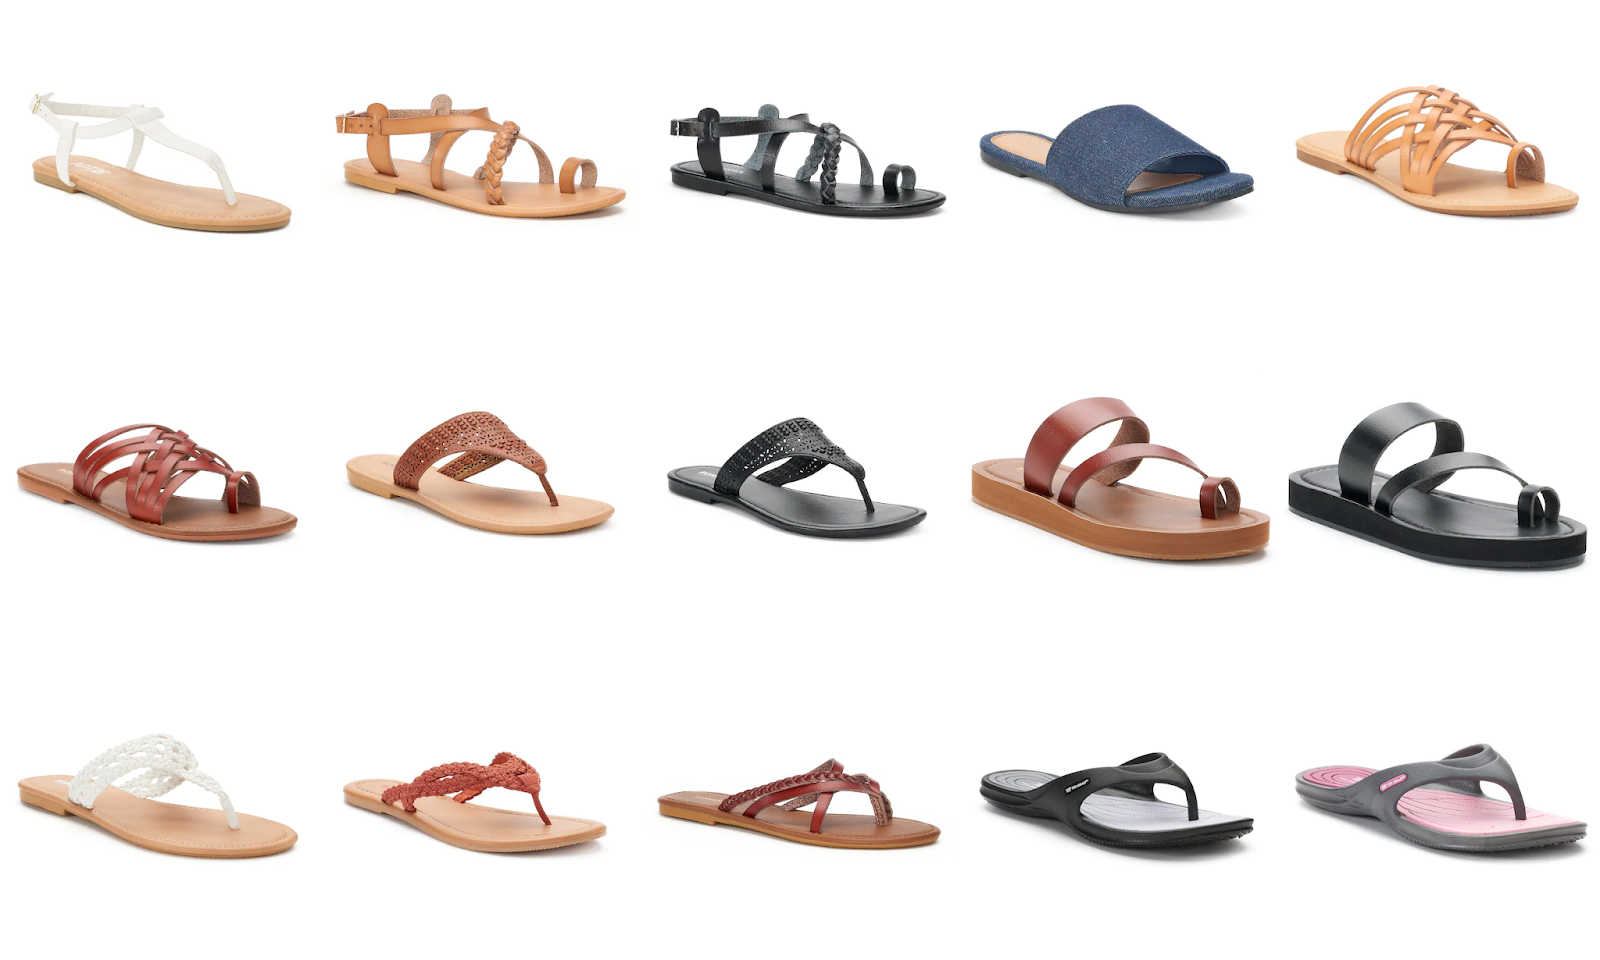 a5e6e16e3dd6 Kohls has these Women s SO Sandals for  8 (Reg.  20). Kohl s Card-Holder  also get an extra 30% off with code  CRISP30 and free ship with code   FALL4MVC.